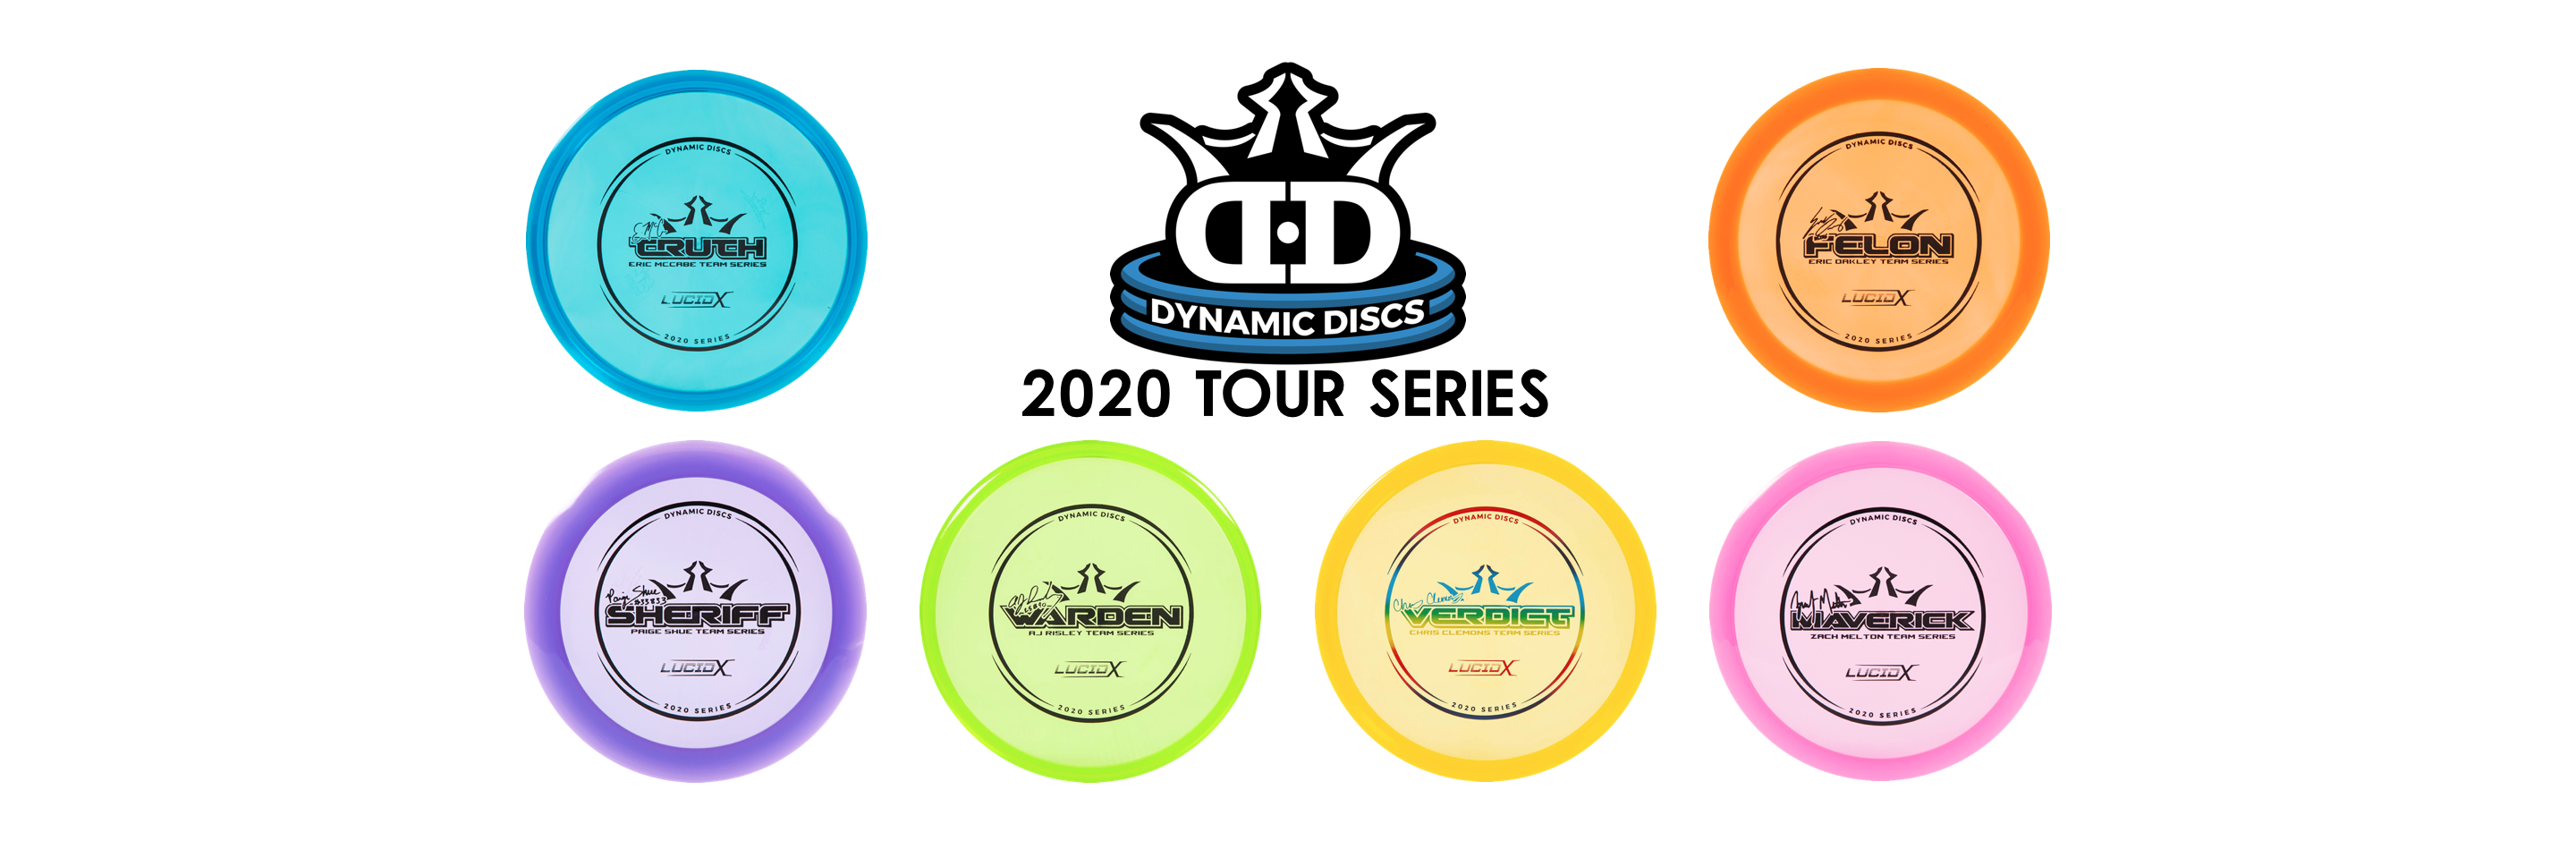 dynamic-discs-2020-tour-series-header.png